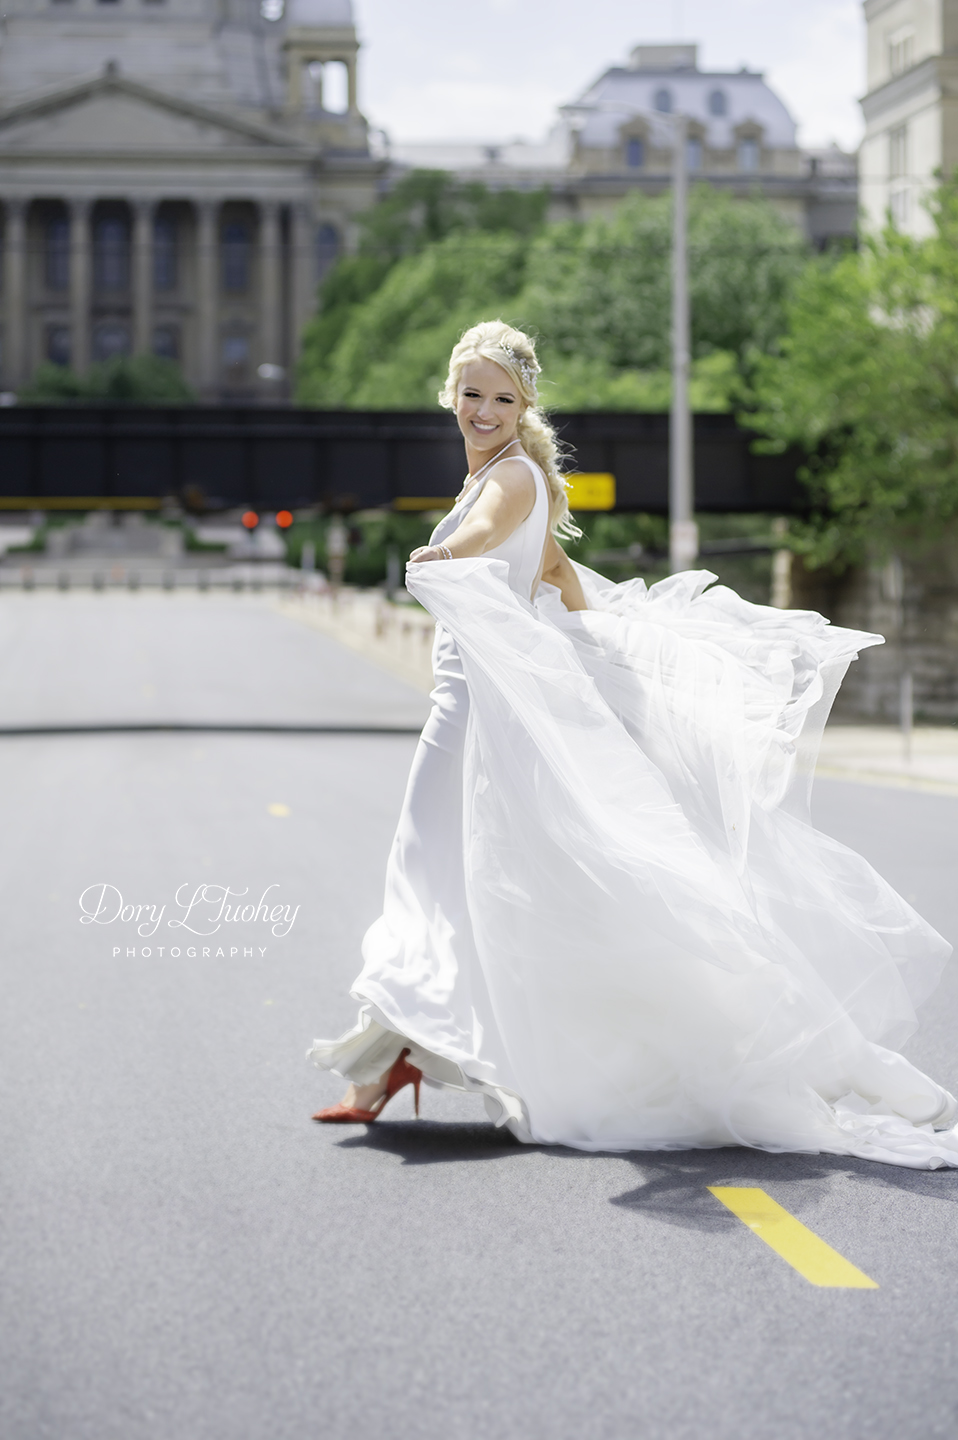 Dory_springfield_wedding_bride_red_shoes_photographer_capital_10.jpg